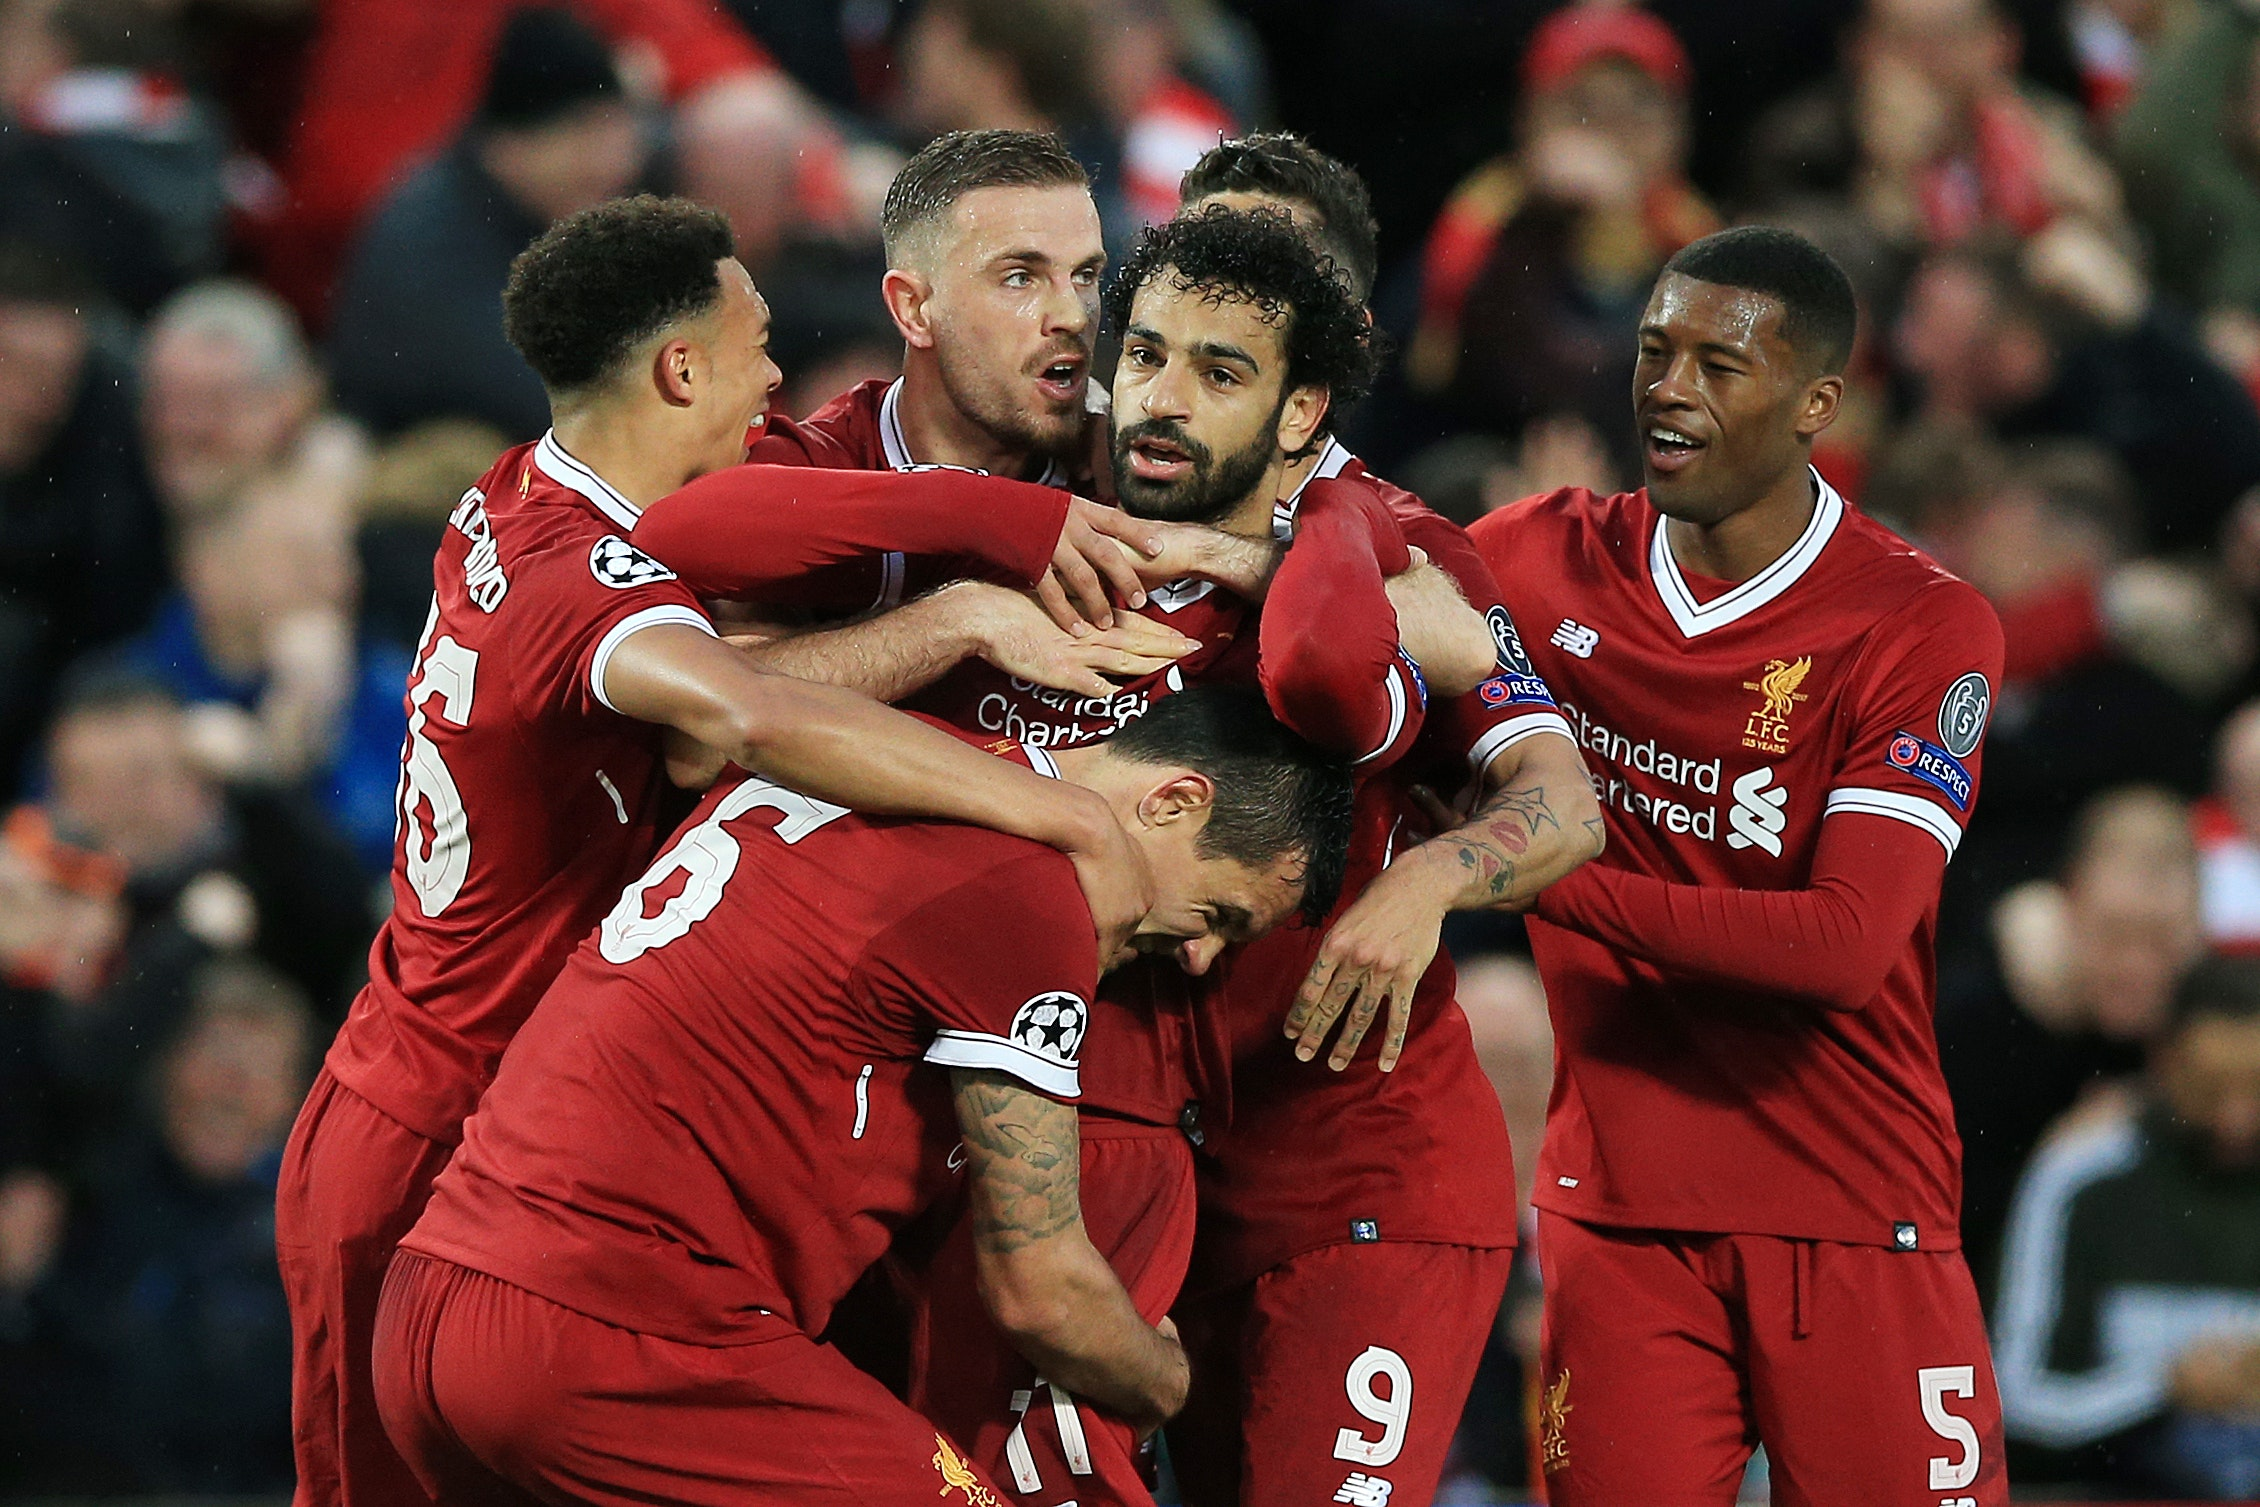 Liverpool face Real Madrid in the Champions League final on Saturday